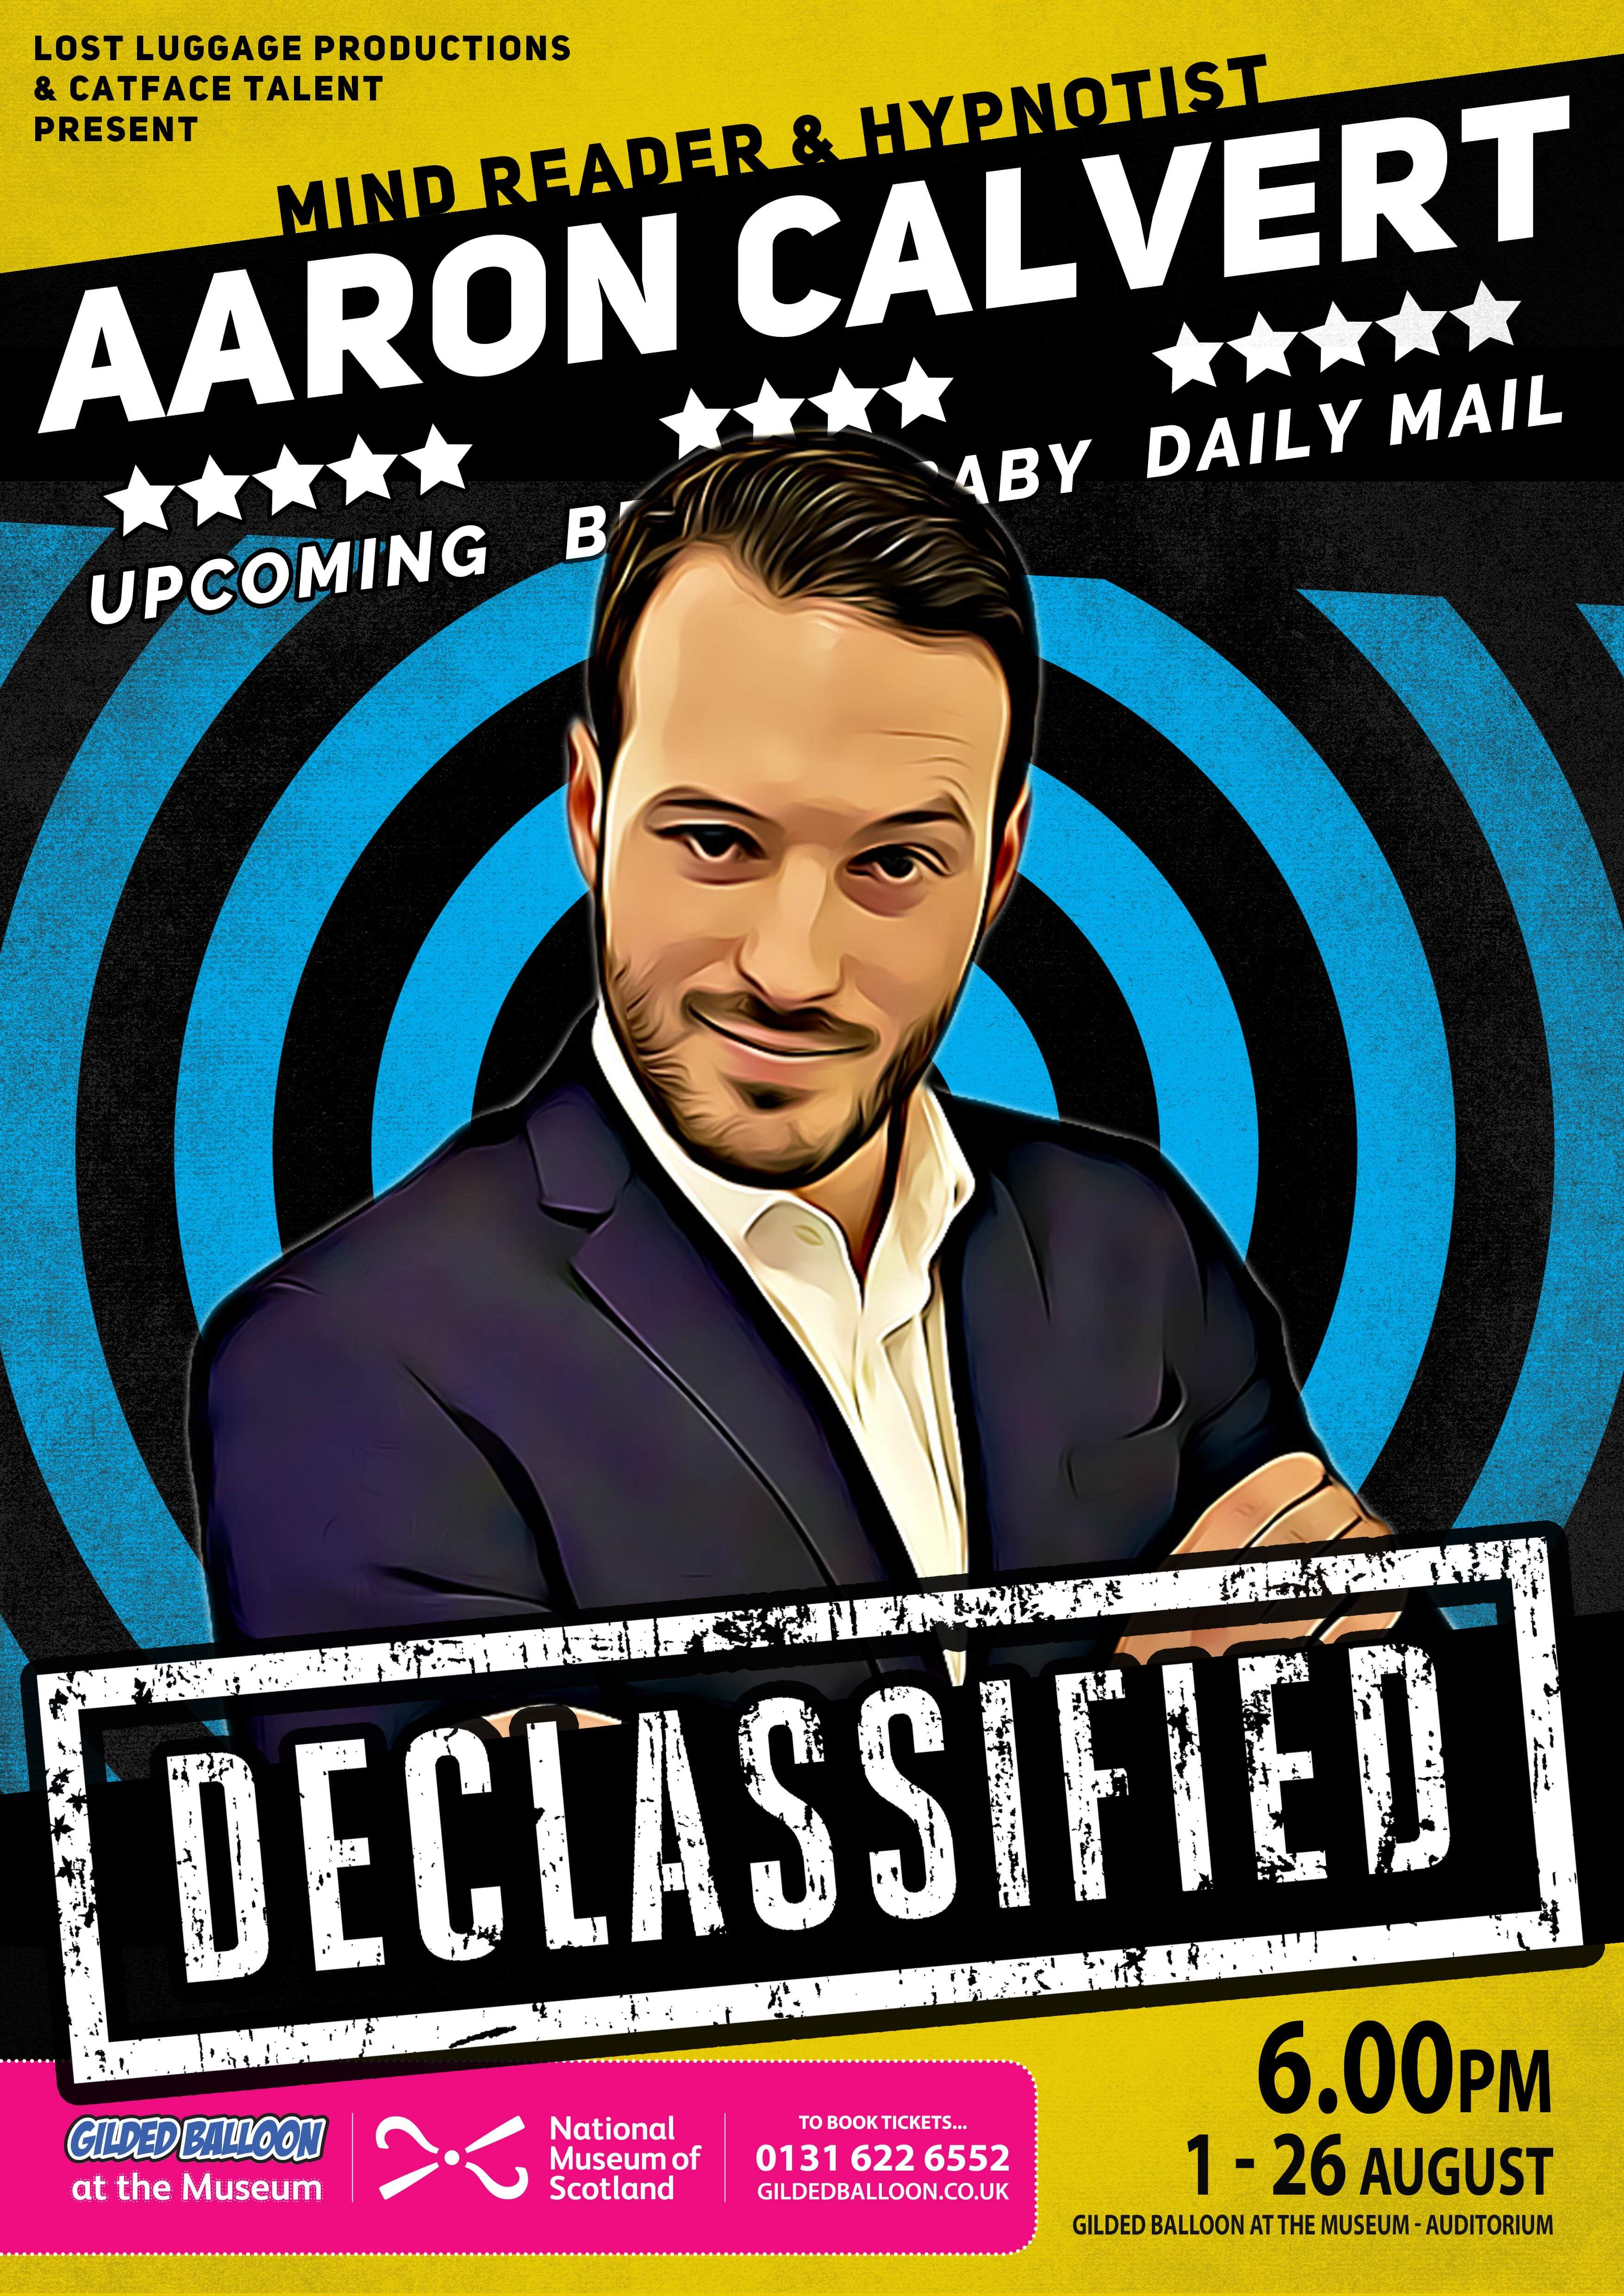 Aaron Calvert Declassifies Edinrbugh Fringe Magic Show Poster for Gilded Balloon (1)